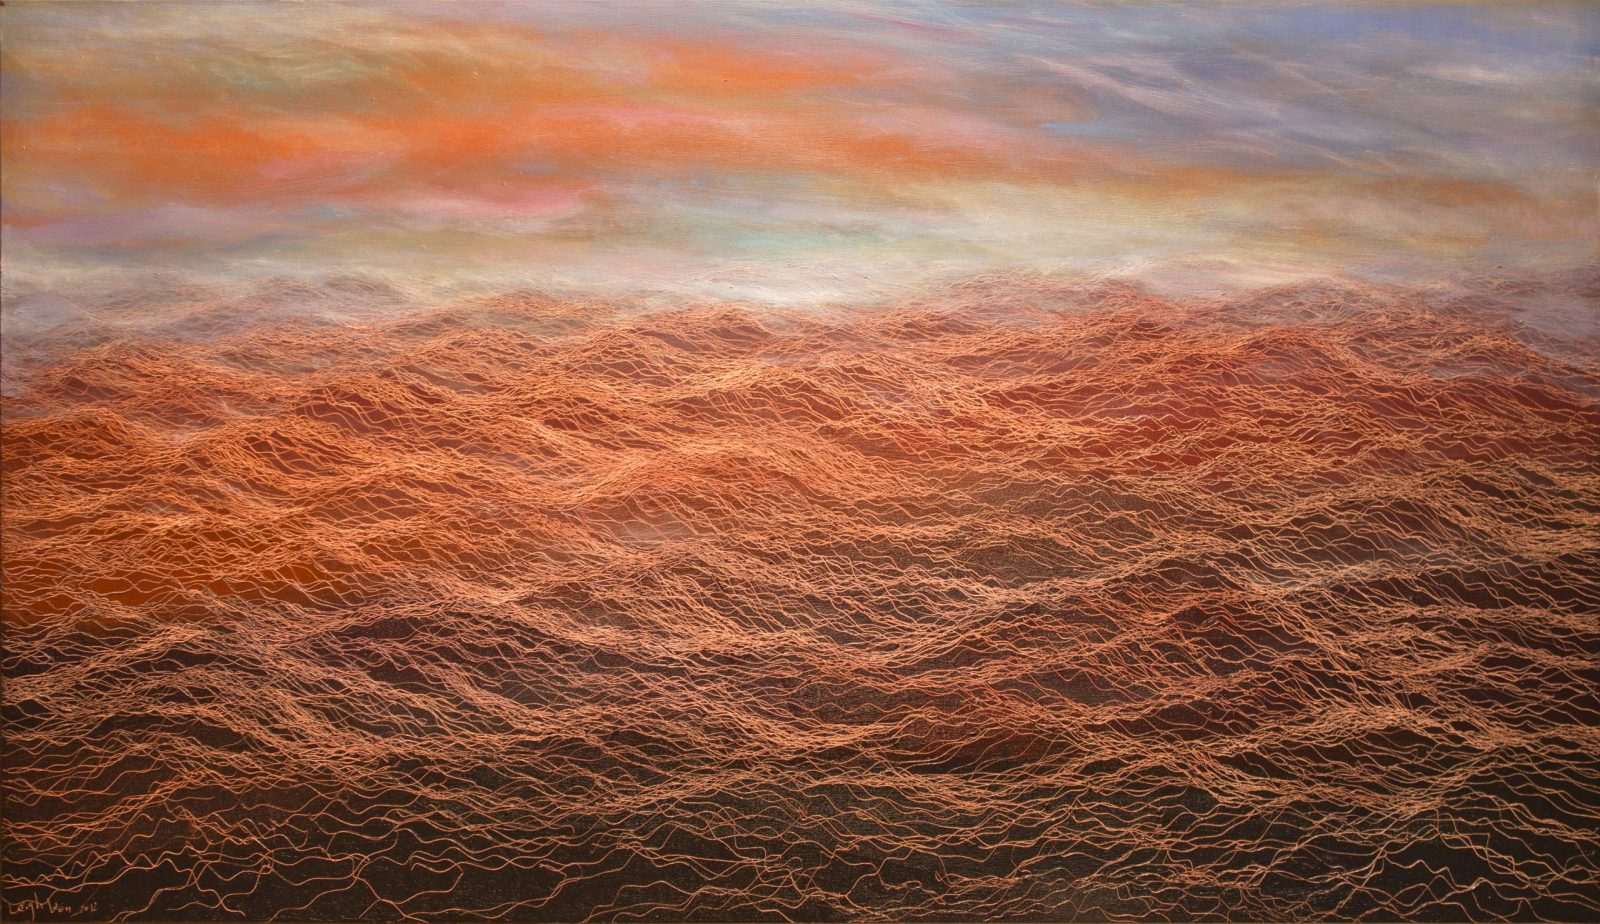 Dawn-5, 51 x 88, oil on canvas, 2012